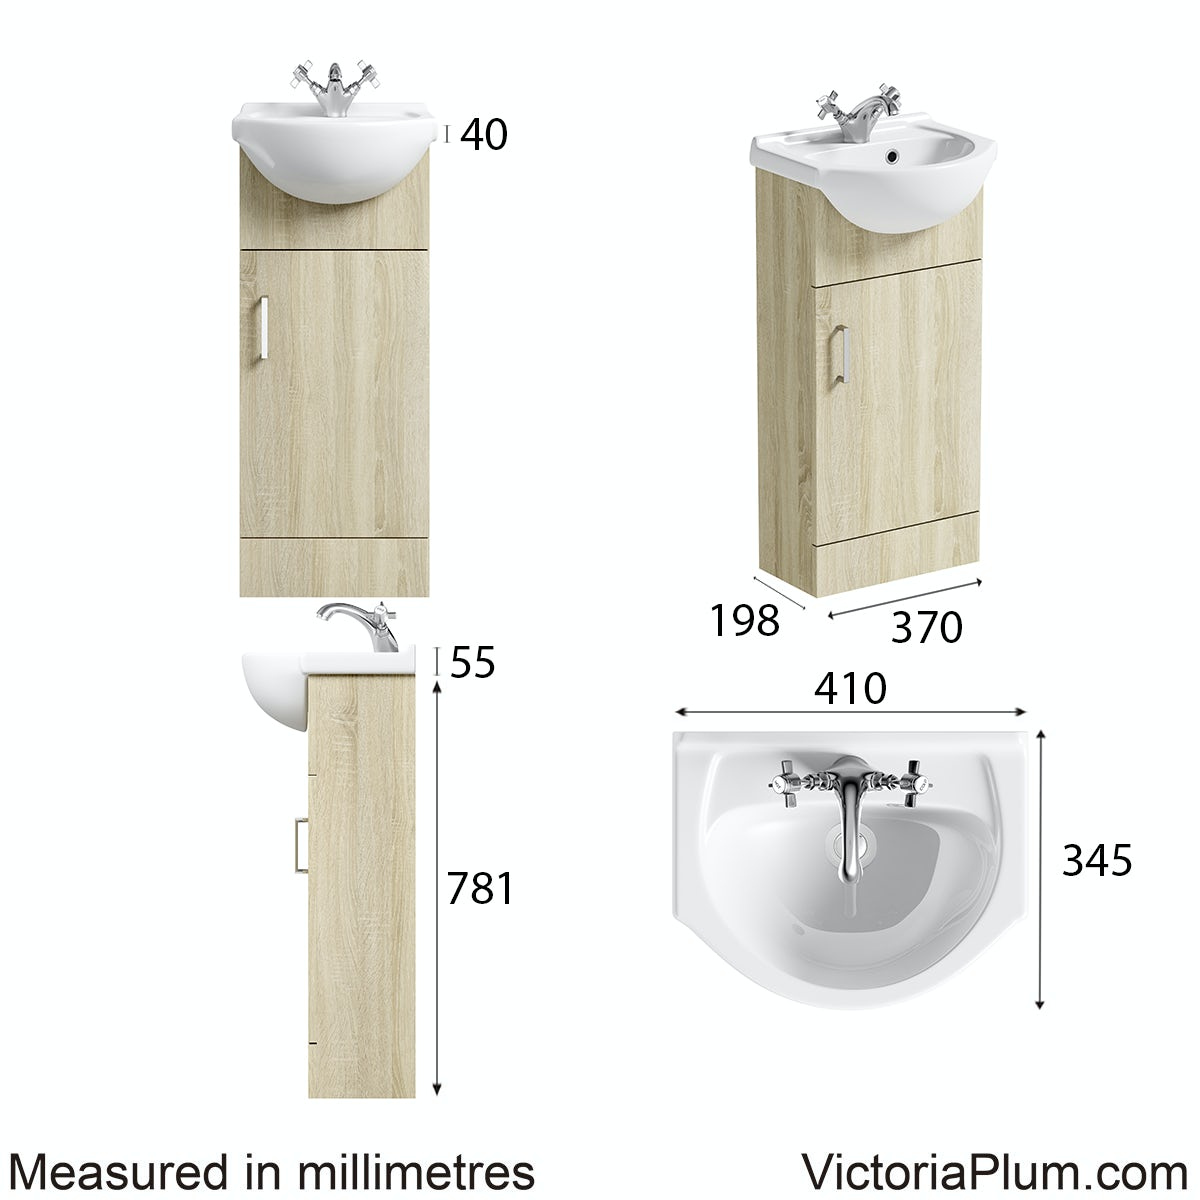 Dimensions for Orchard Eden oak vanity unit and basin 410mm